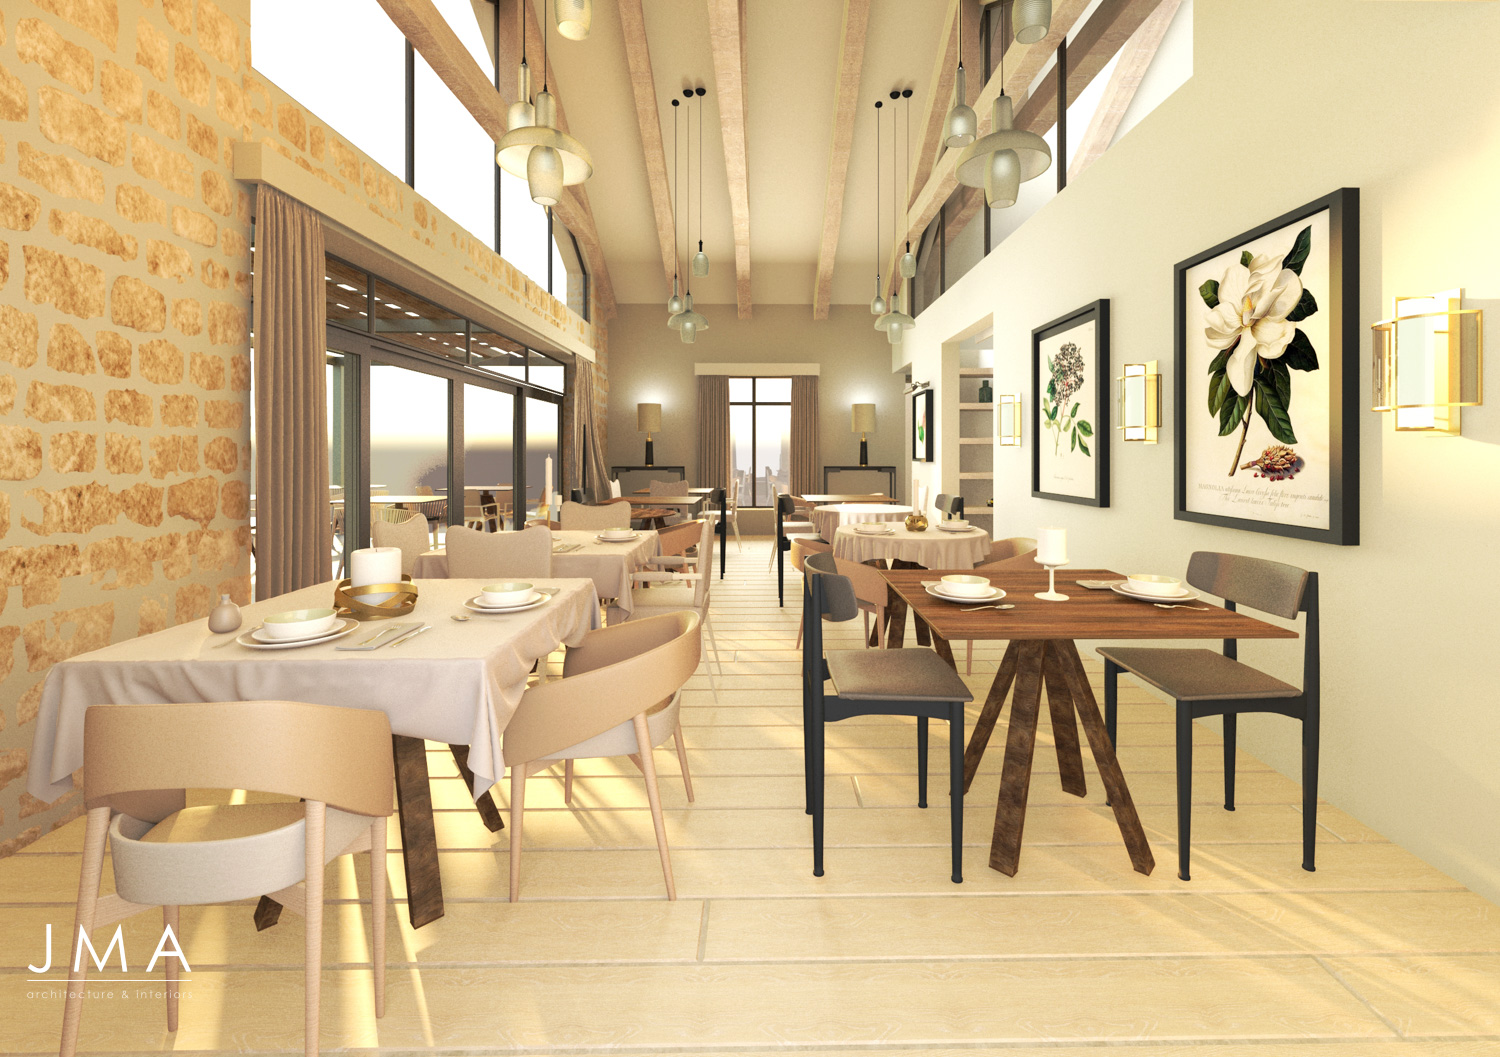 Cederberg Ridge Lodge Dining Room View design and render by Jenny Mills Architects